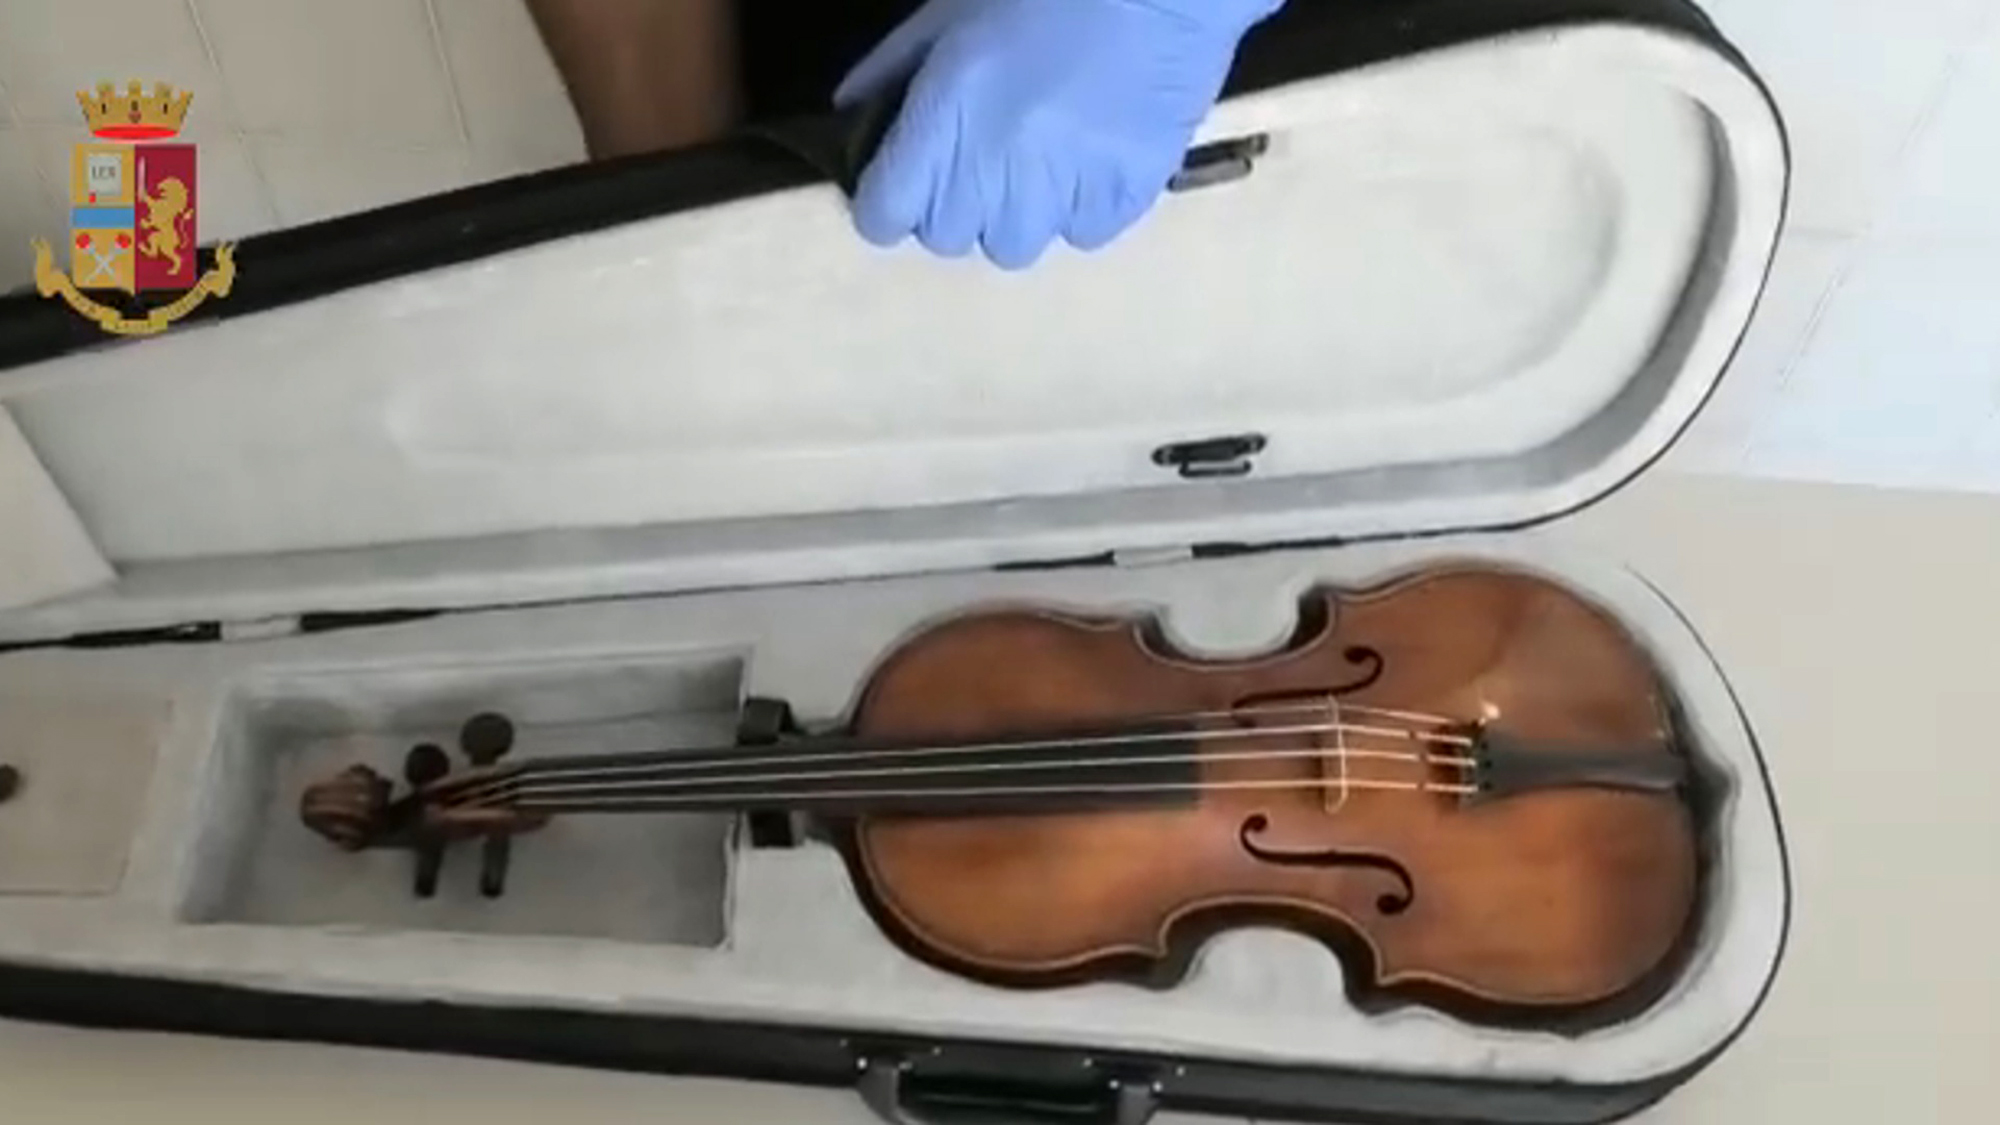 Valuable Violin Found Under Drug Dealer